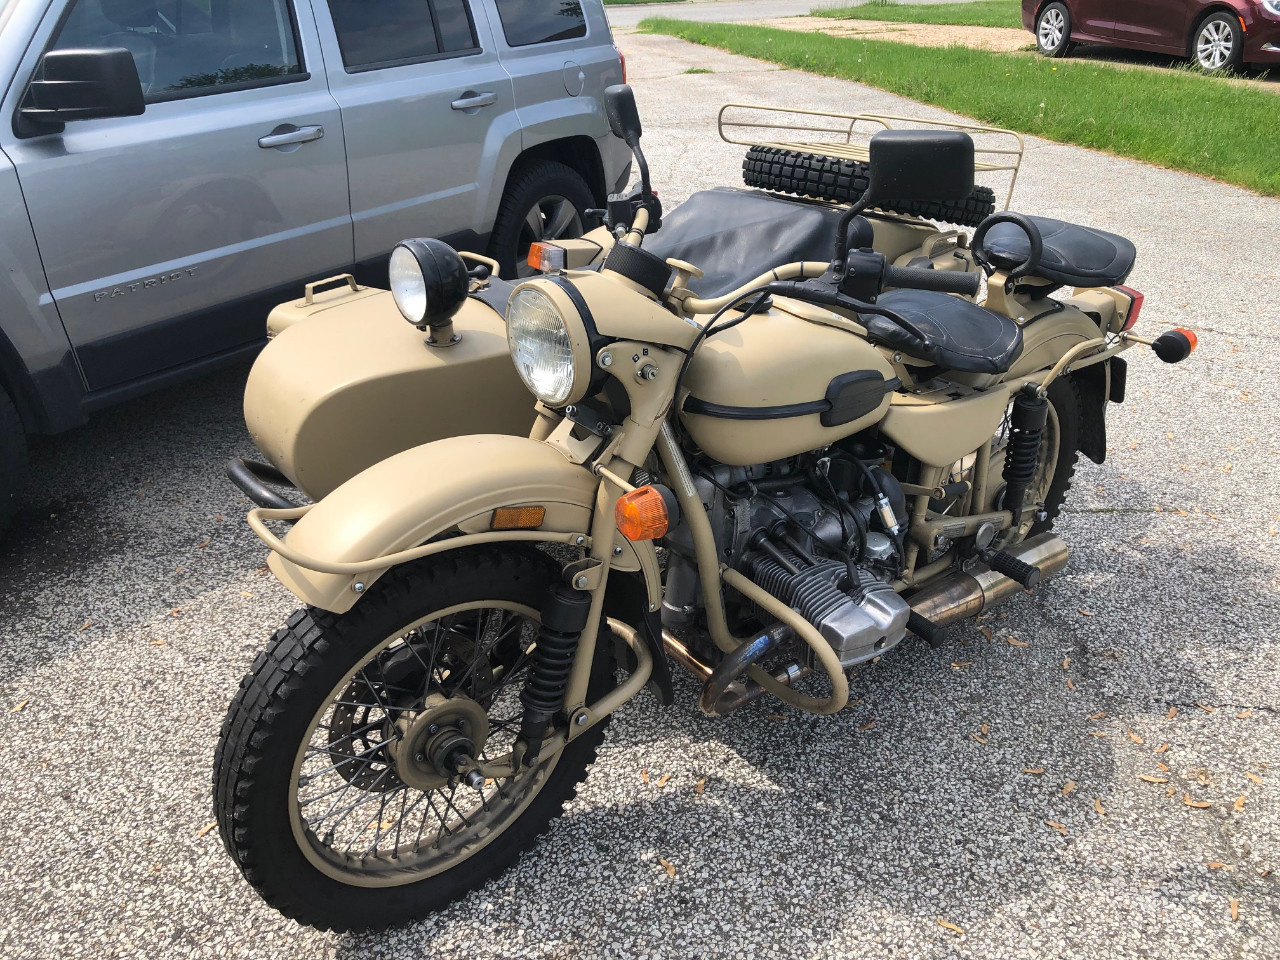 92b490fc4 Used Motorcycles For Sale: 899 Motorcycles - Cycle Trader